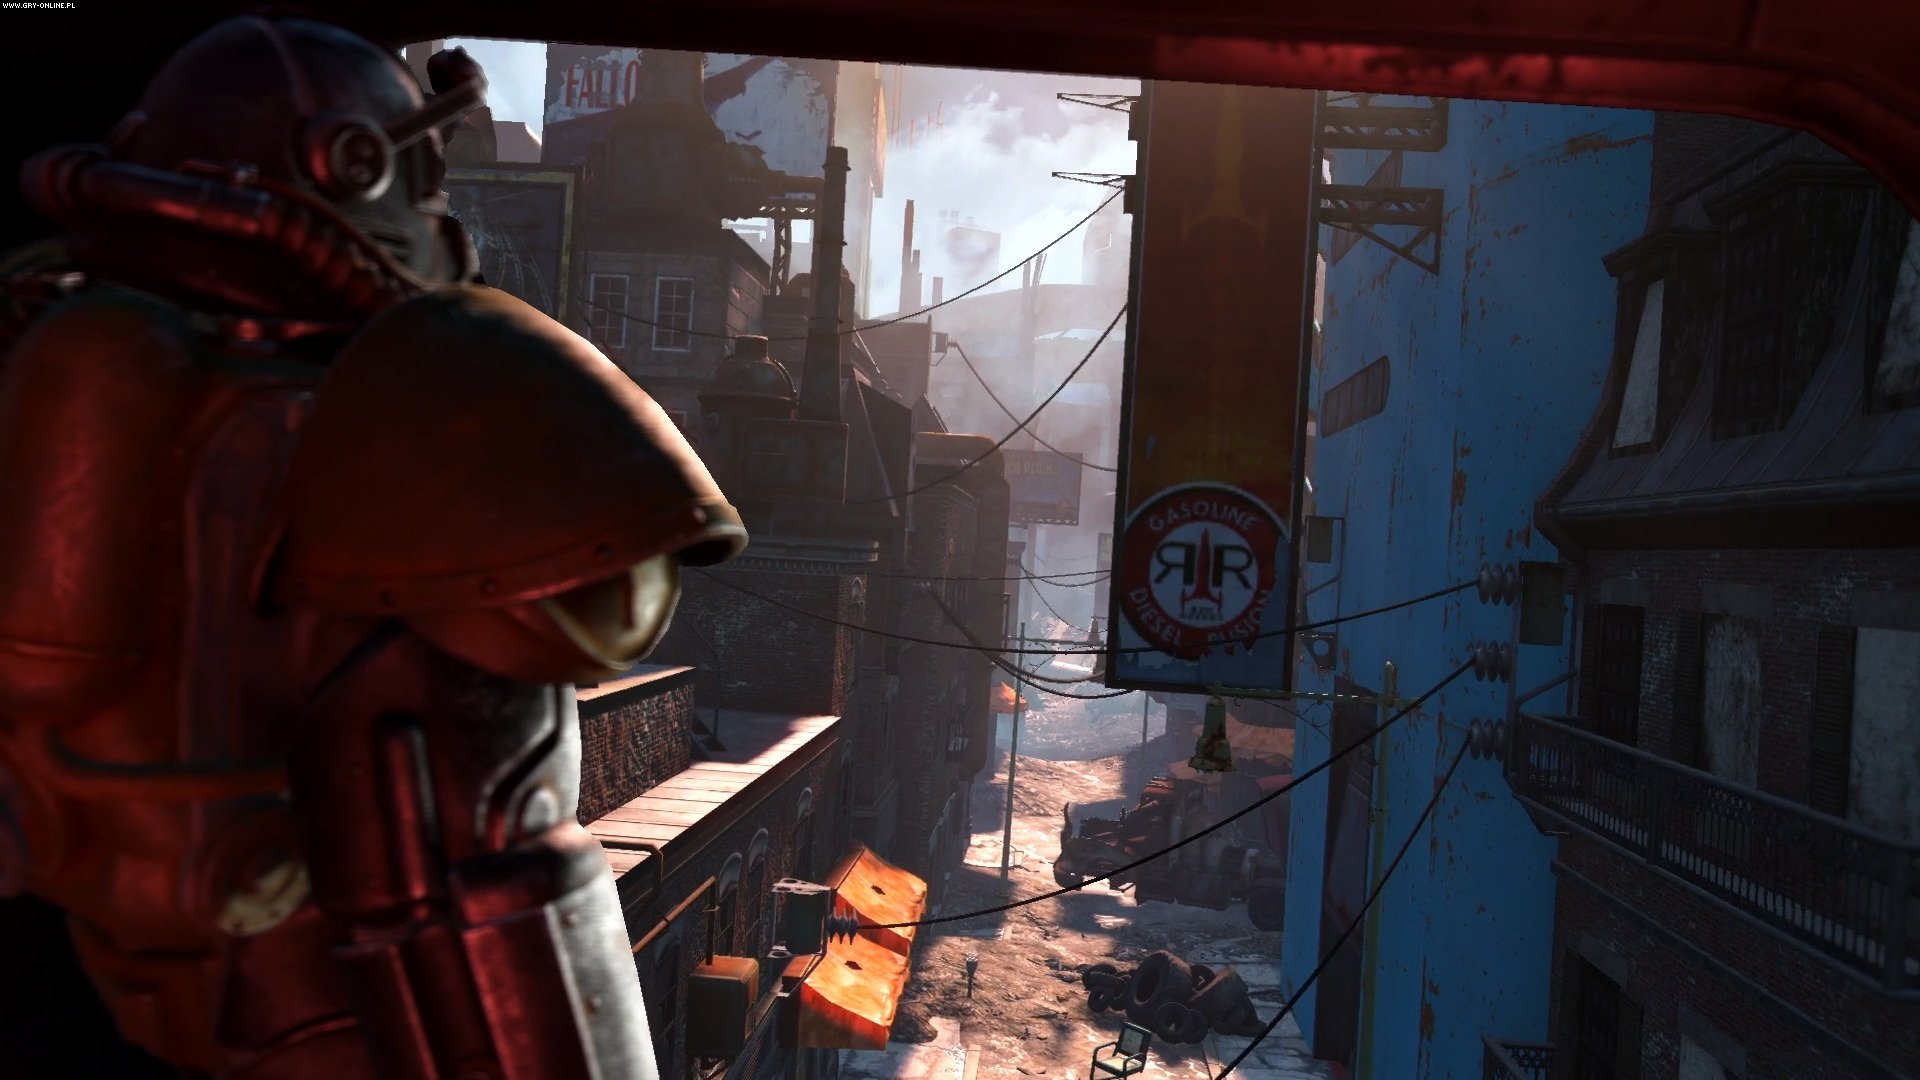 Fallout 4 PC, PS4, XONE Games Image 104/109, Bethesda Softworks